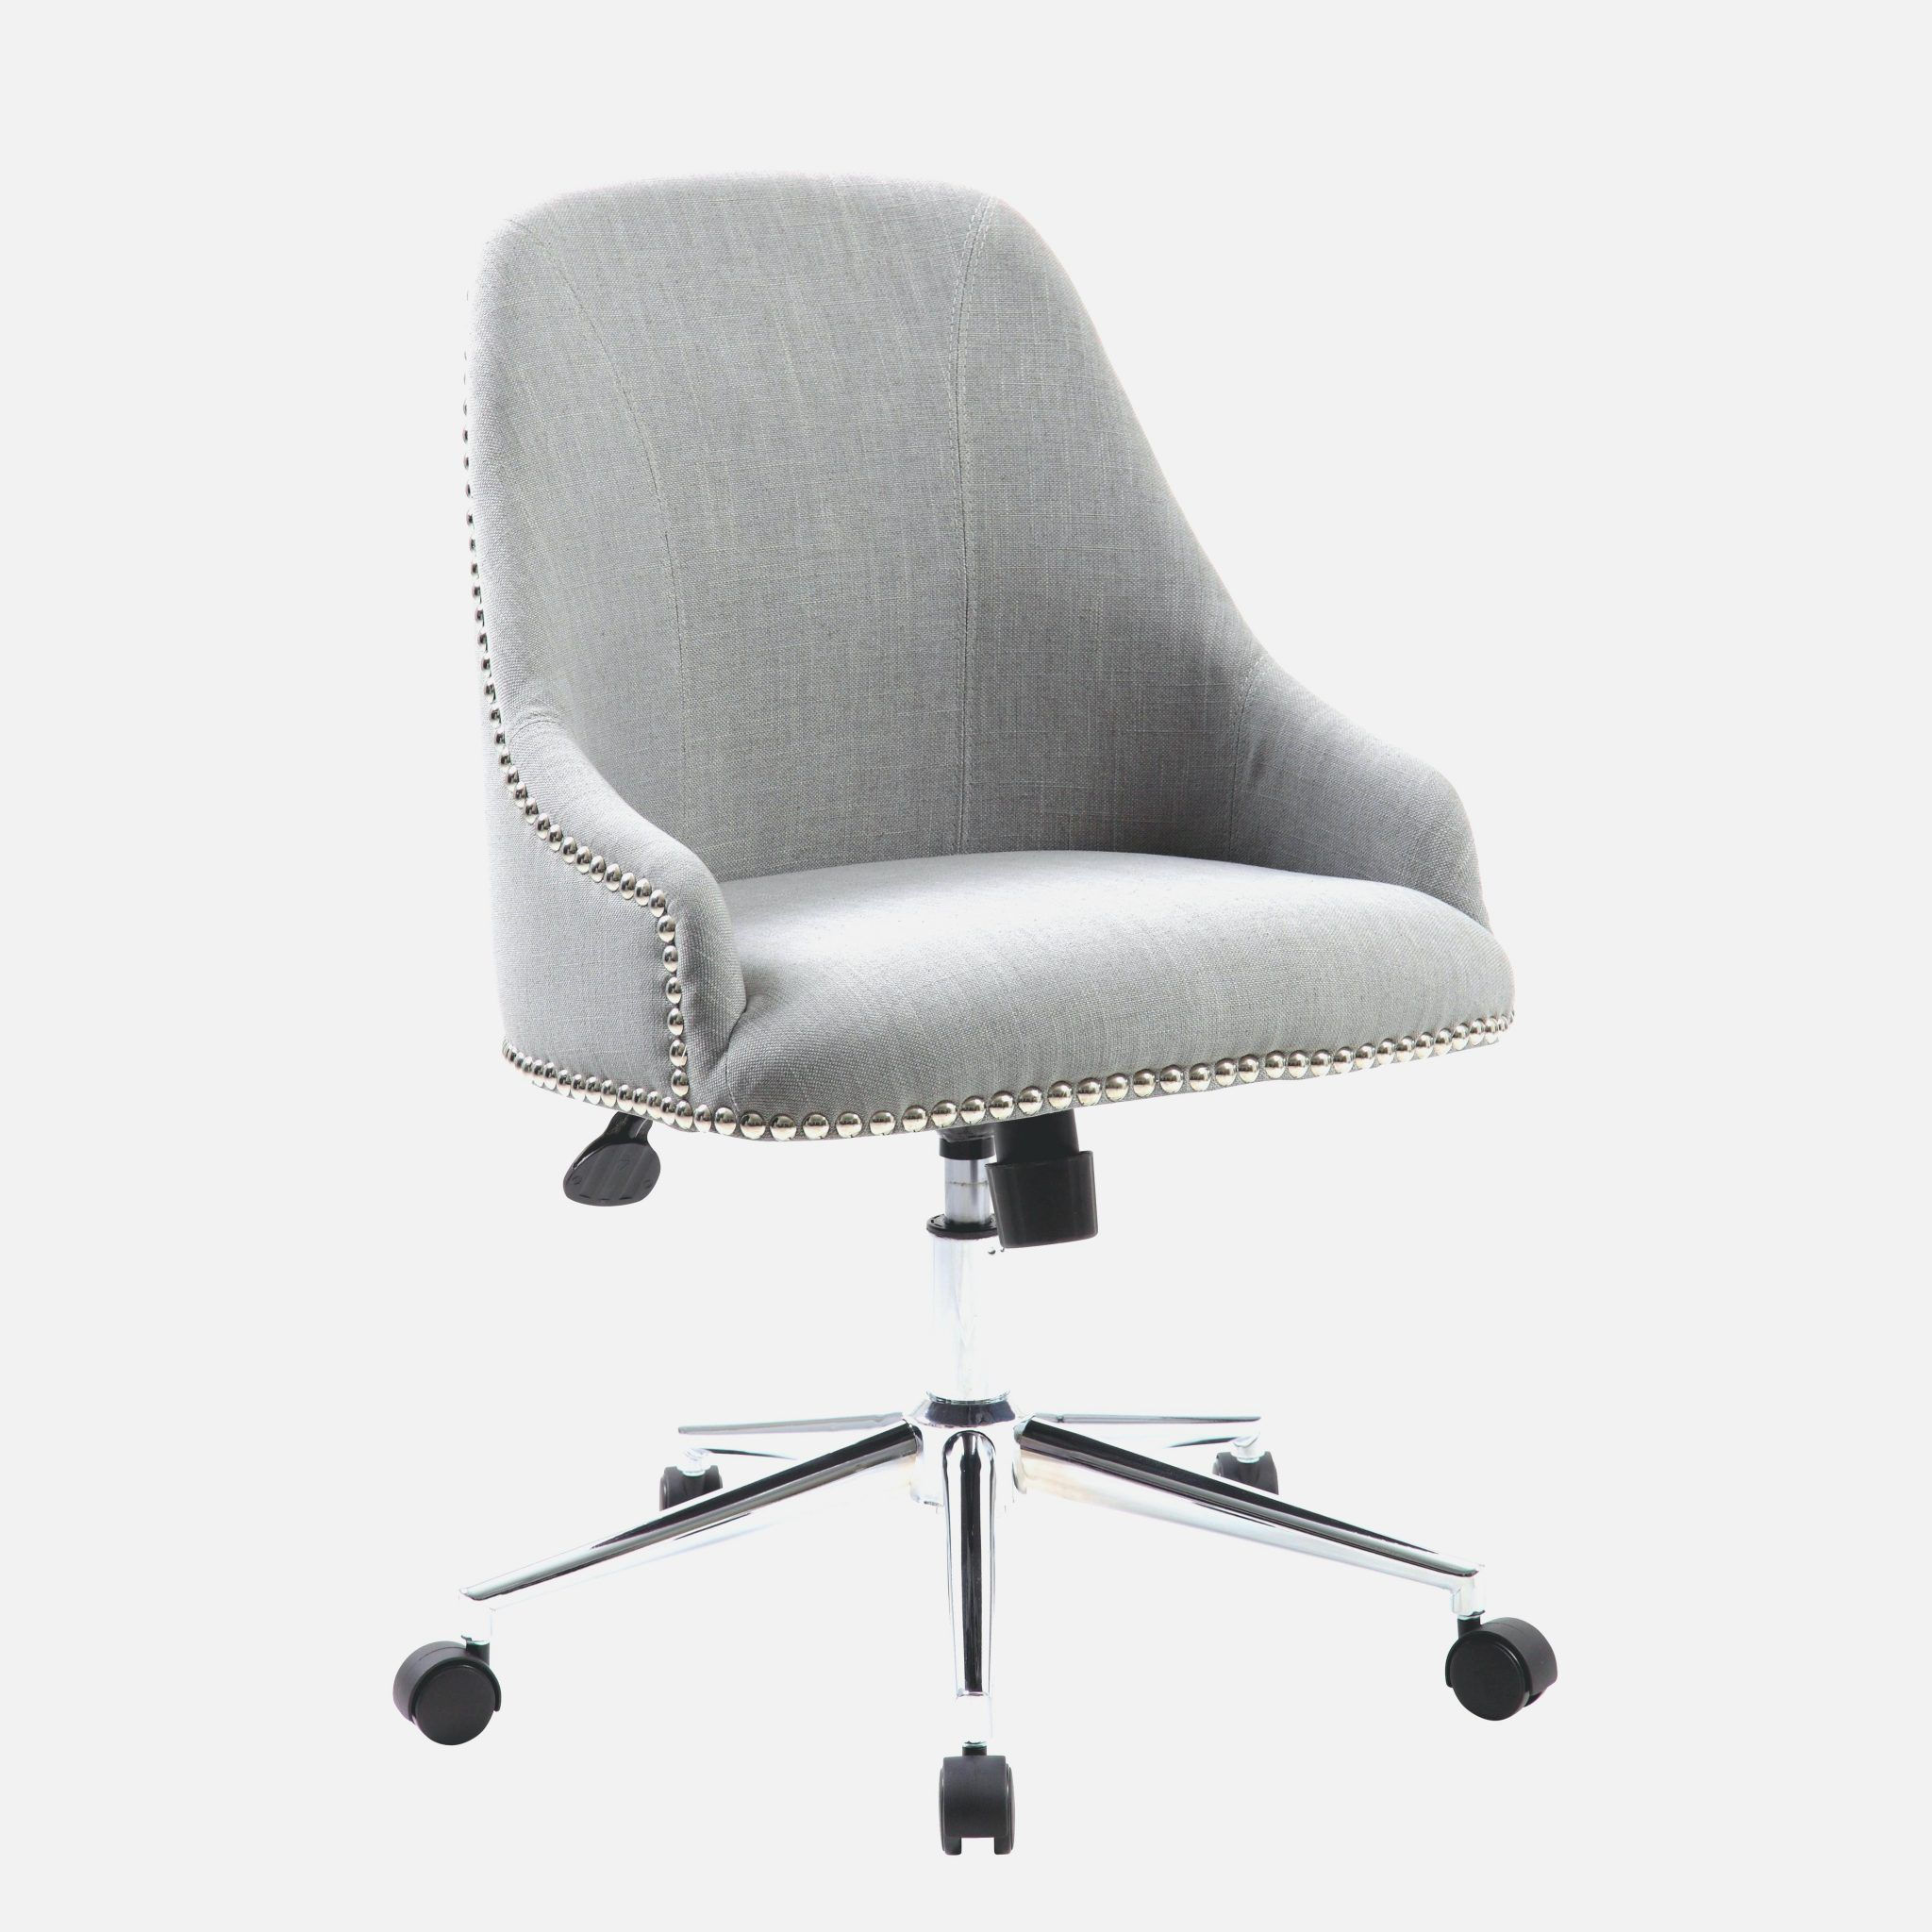 funky office chairs. Fun Desk Chairs - For Desk, Colorful Chairs, Office Funky H